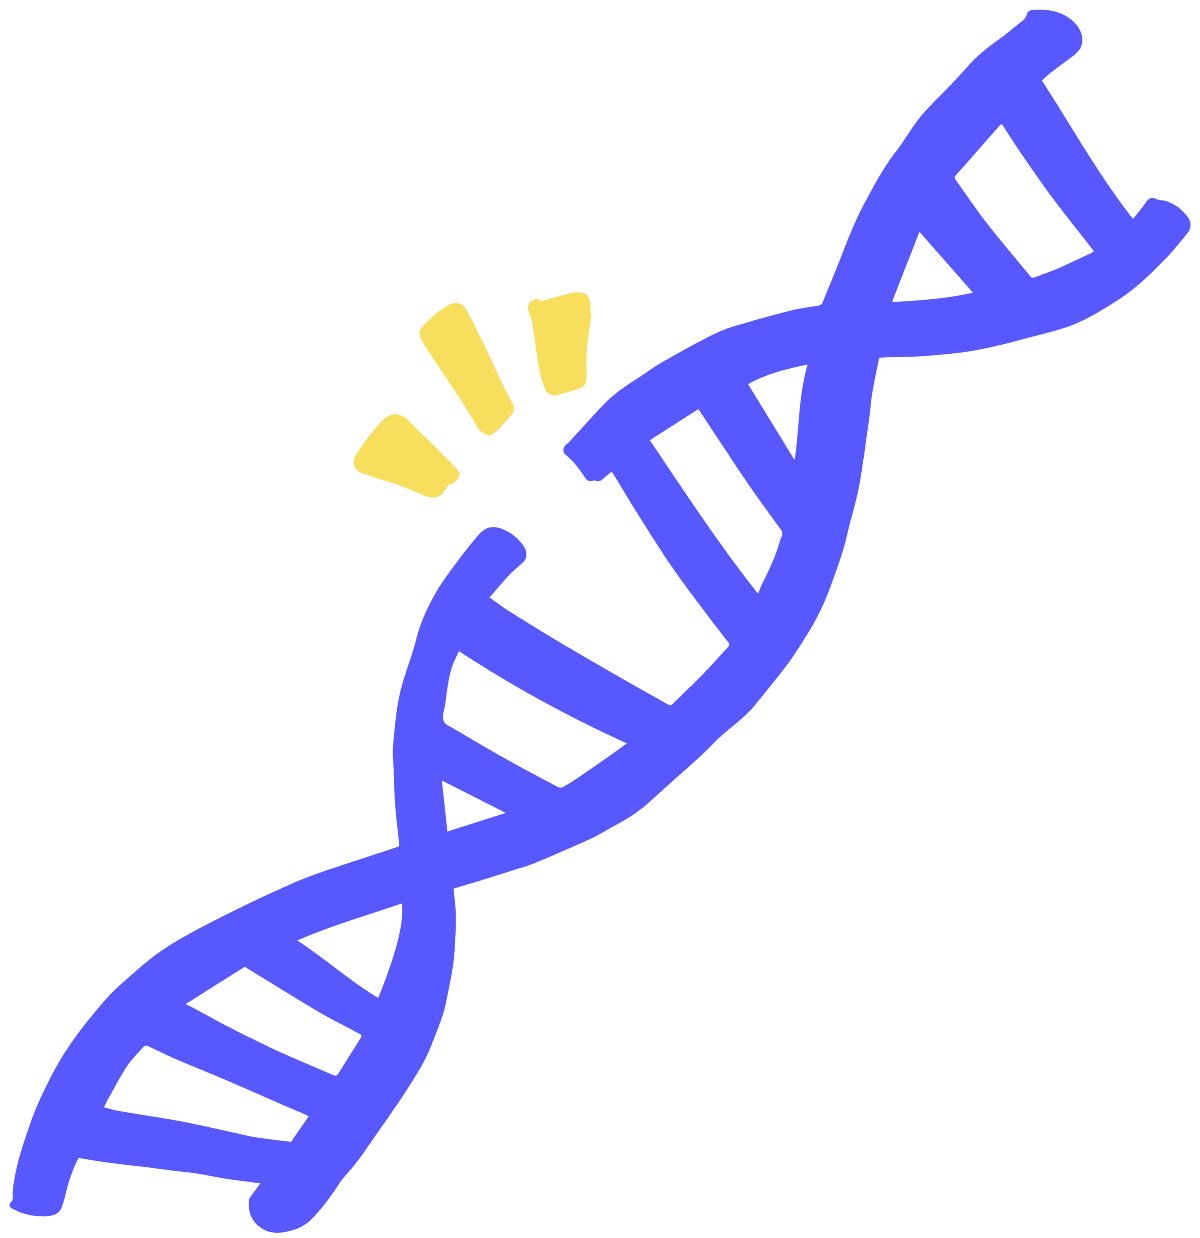 Image of a double stranded nick in a blue DNA